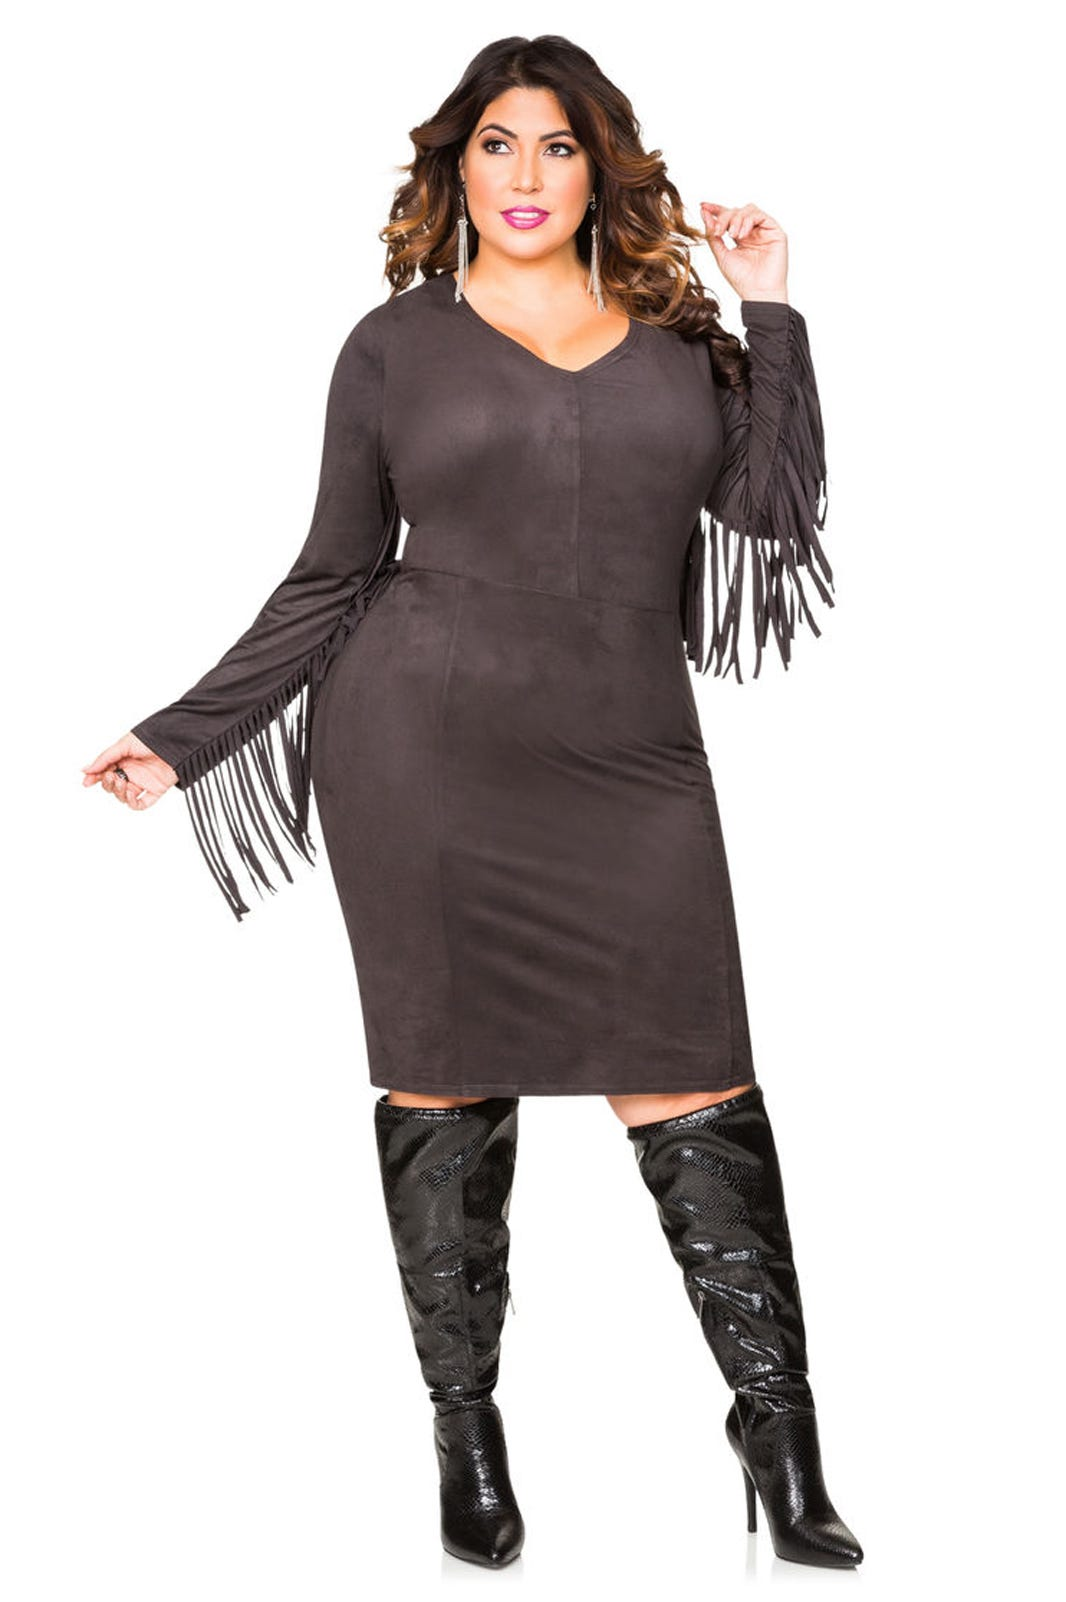 bd36cbad4c6 How To Dress Your Curvy Figure This Autumn 2015